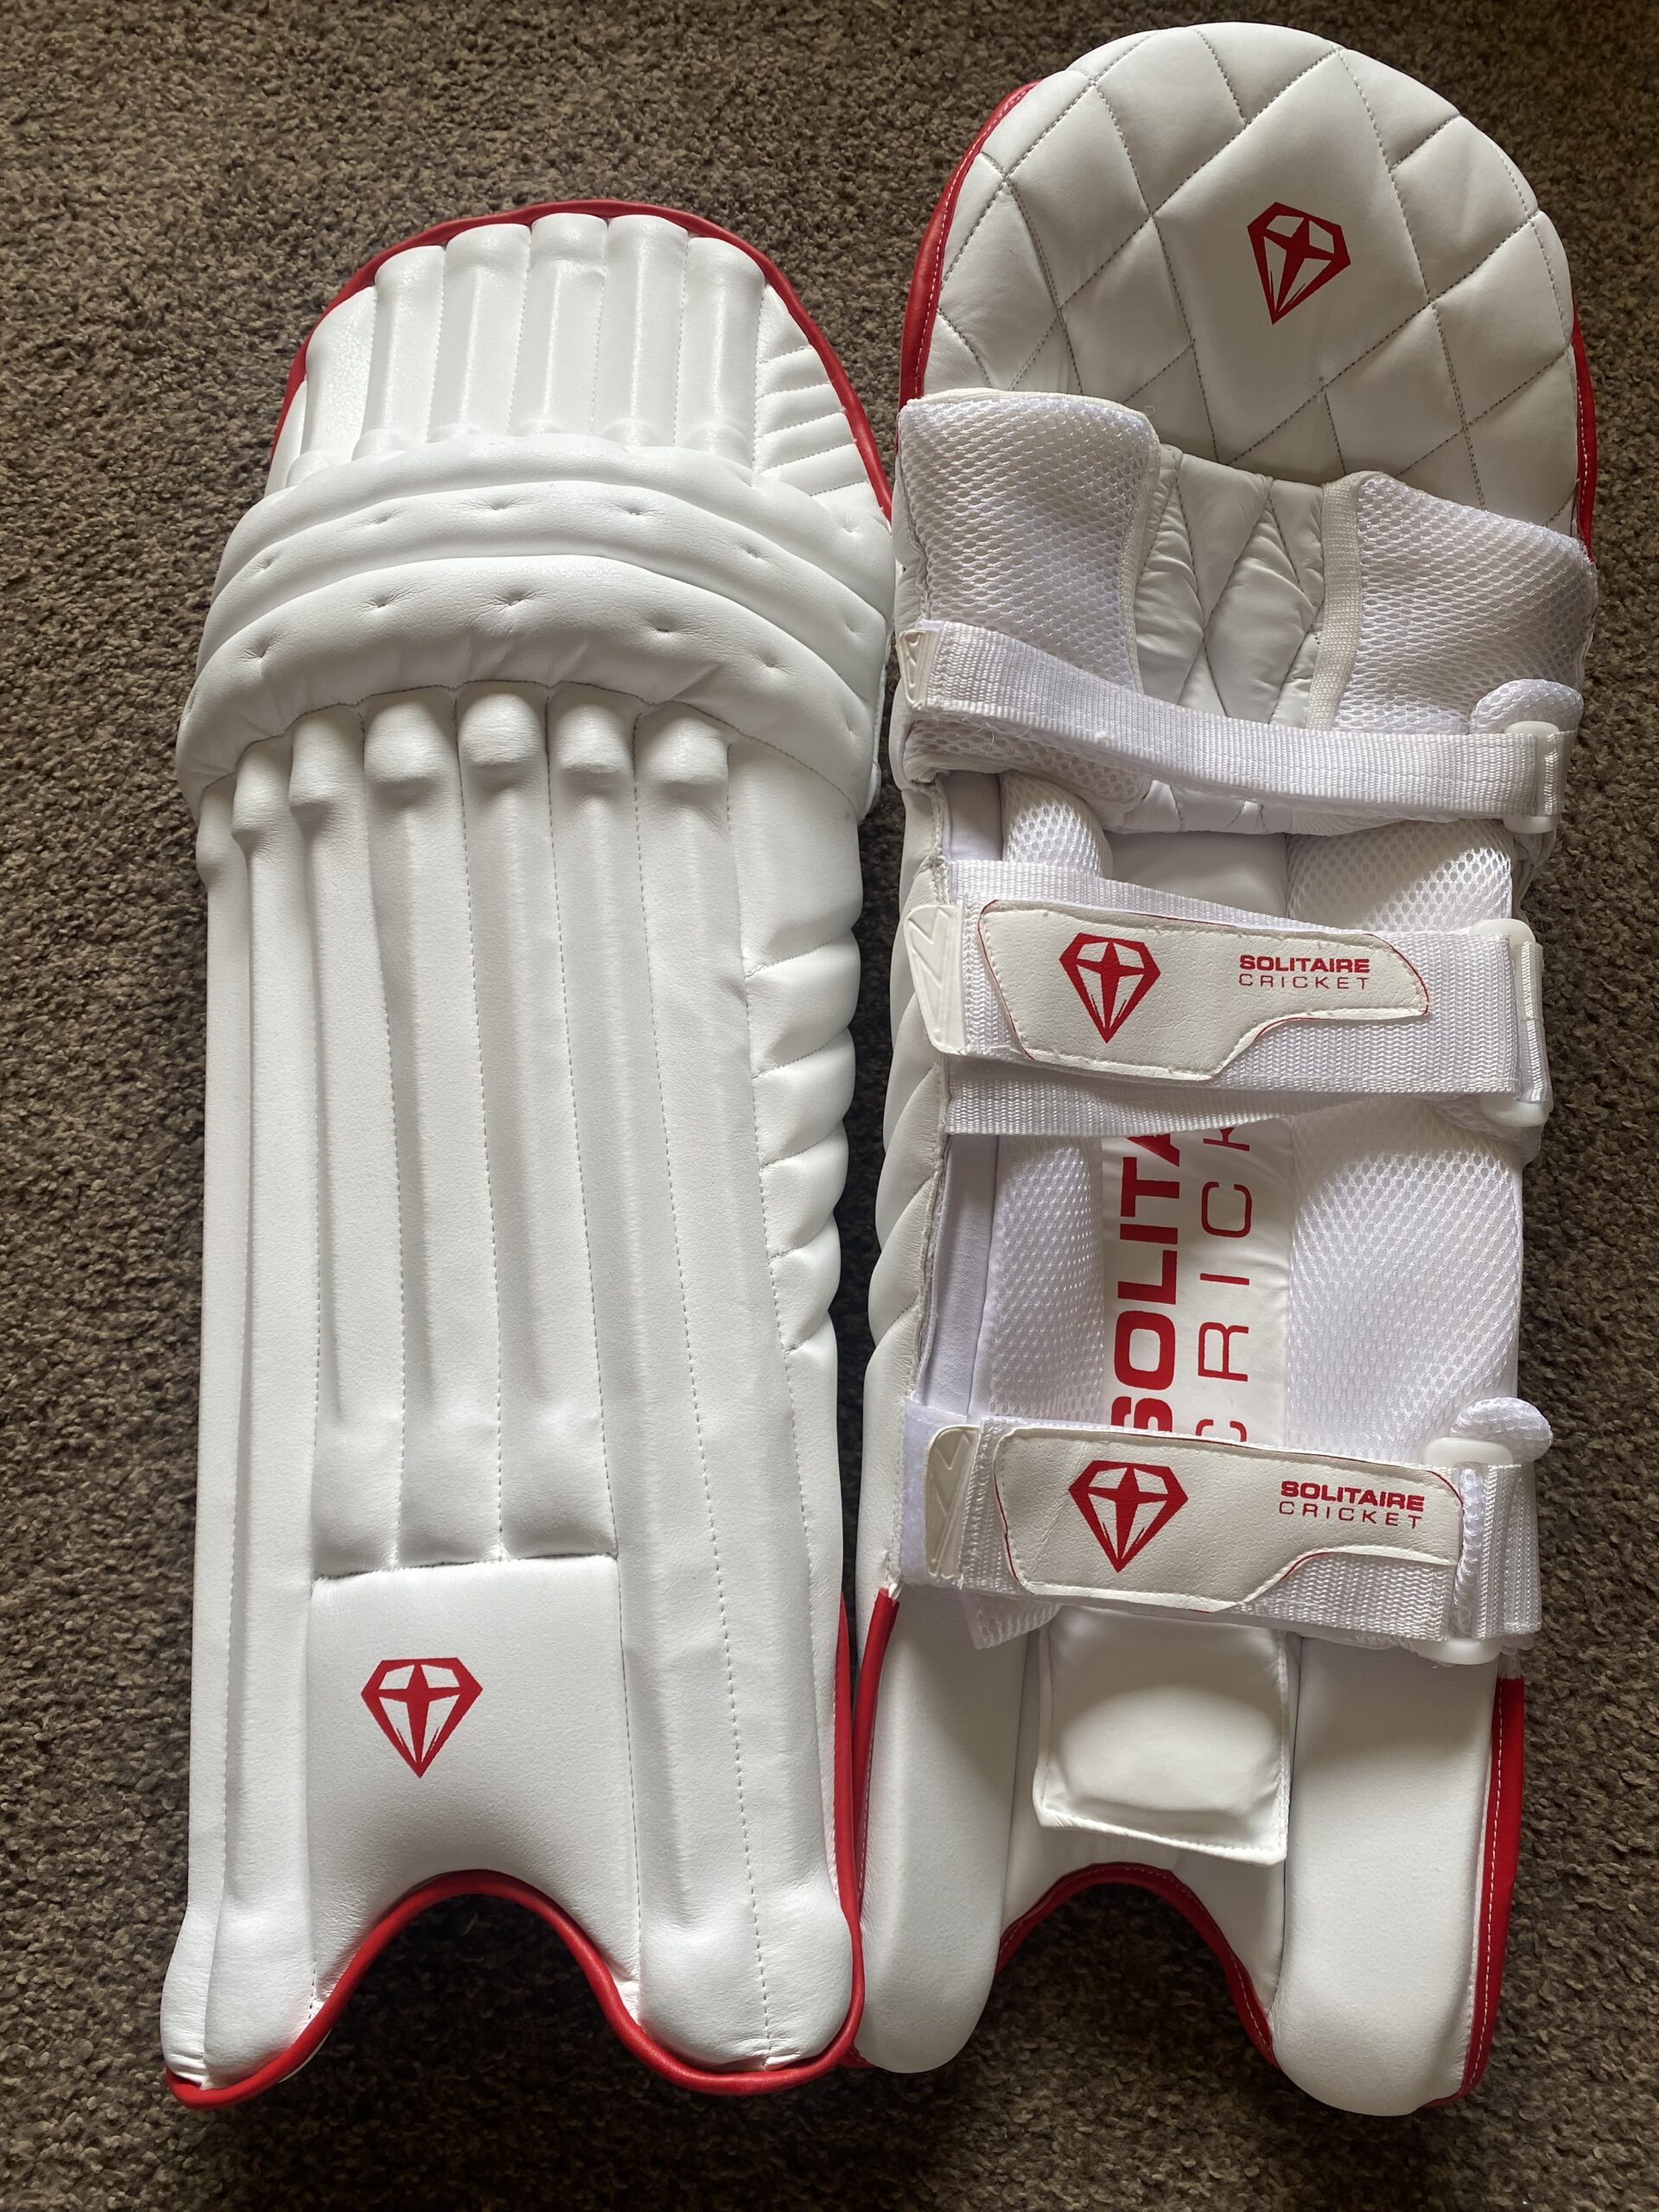 Solitaire Batting Pads